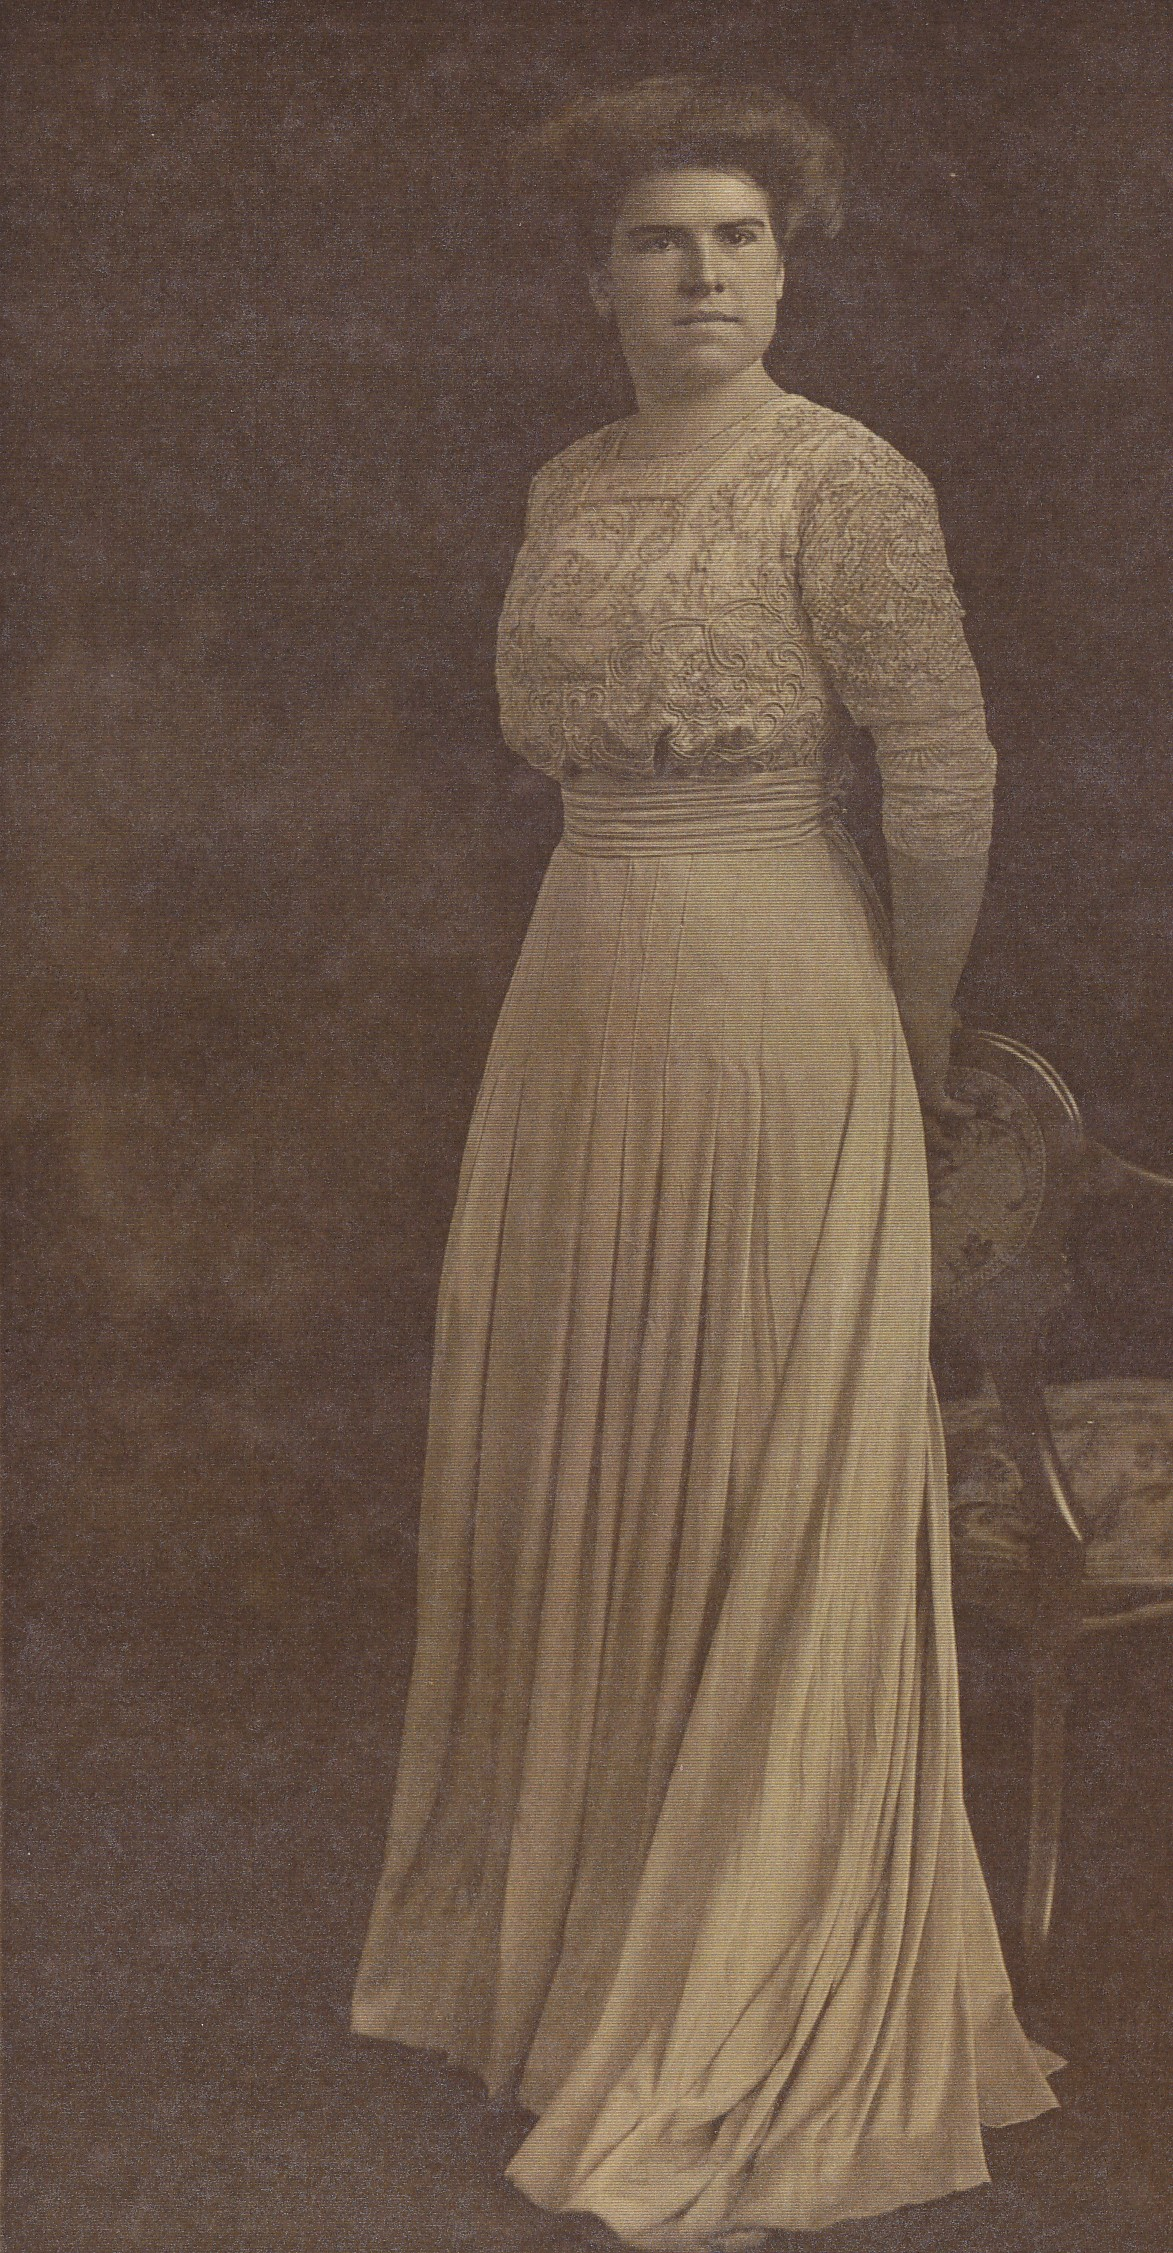 Marjorie in 1910 striking a stoic pose for the camera.